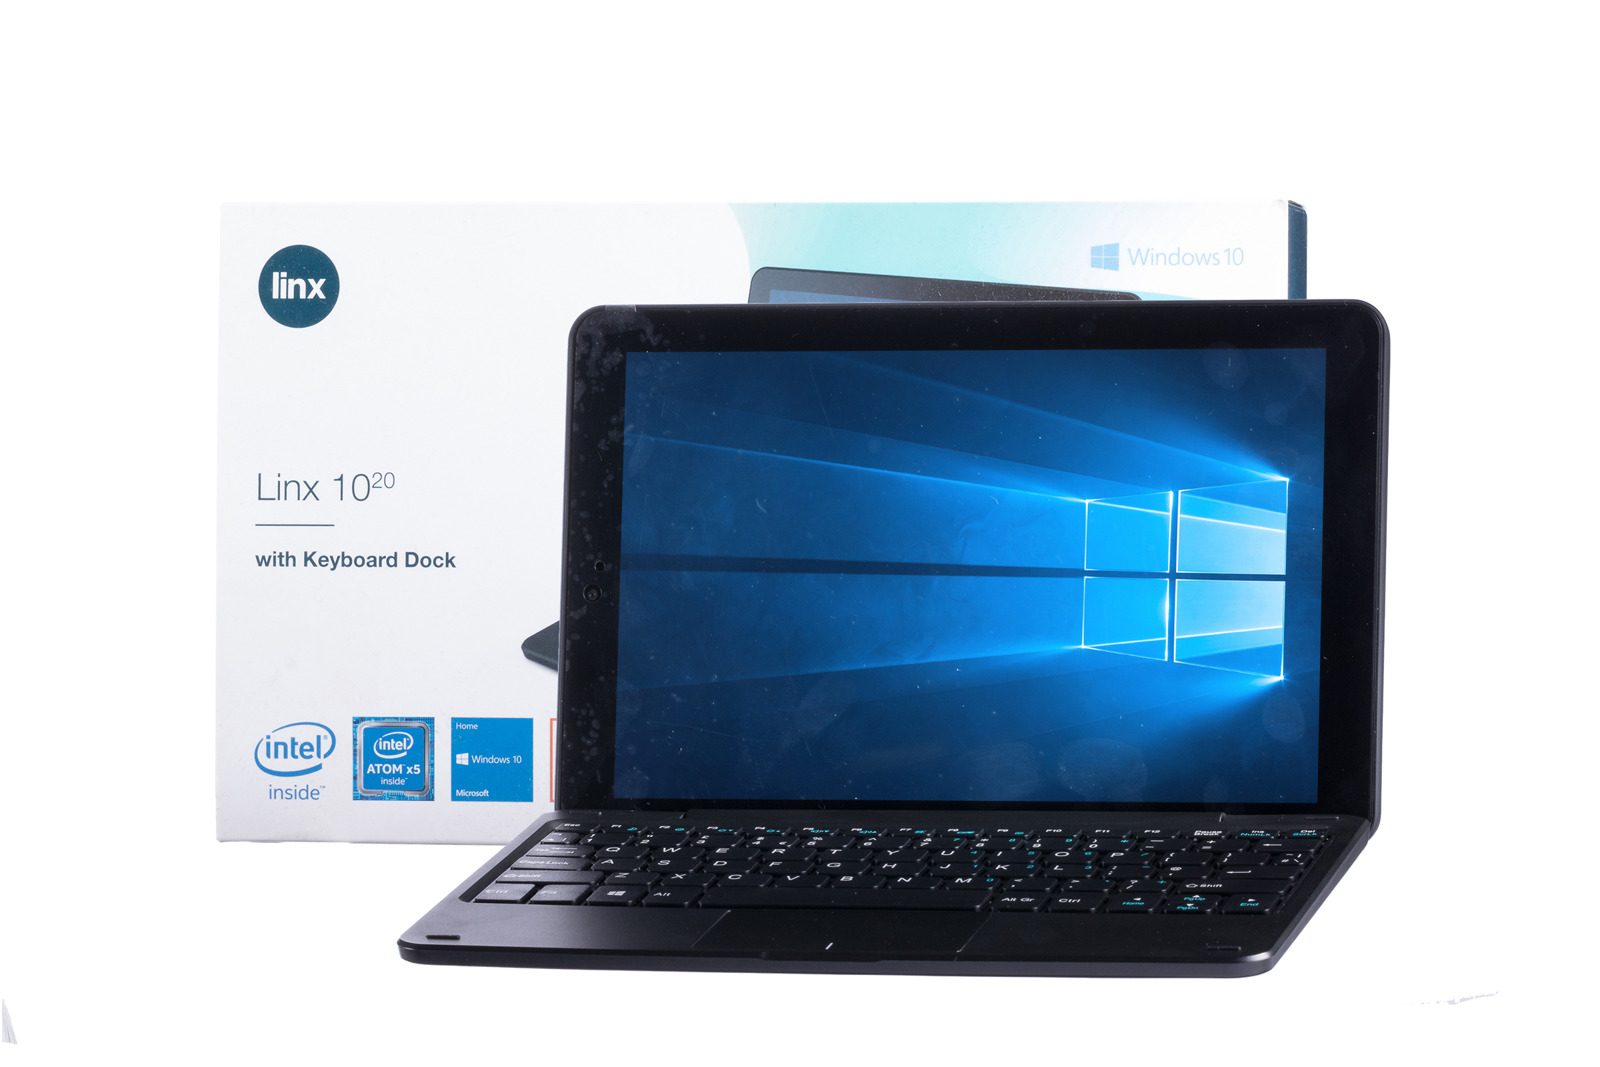 2w1 Linx 1020 32GB z klawiaturą Windows 10 Grade A